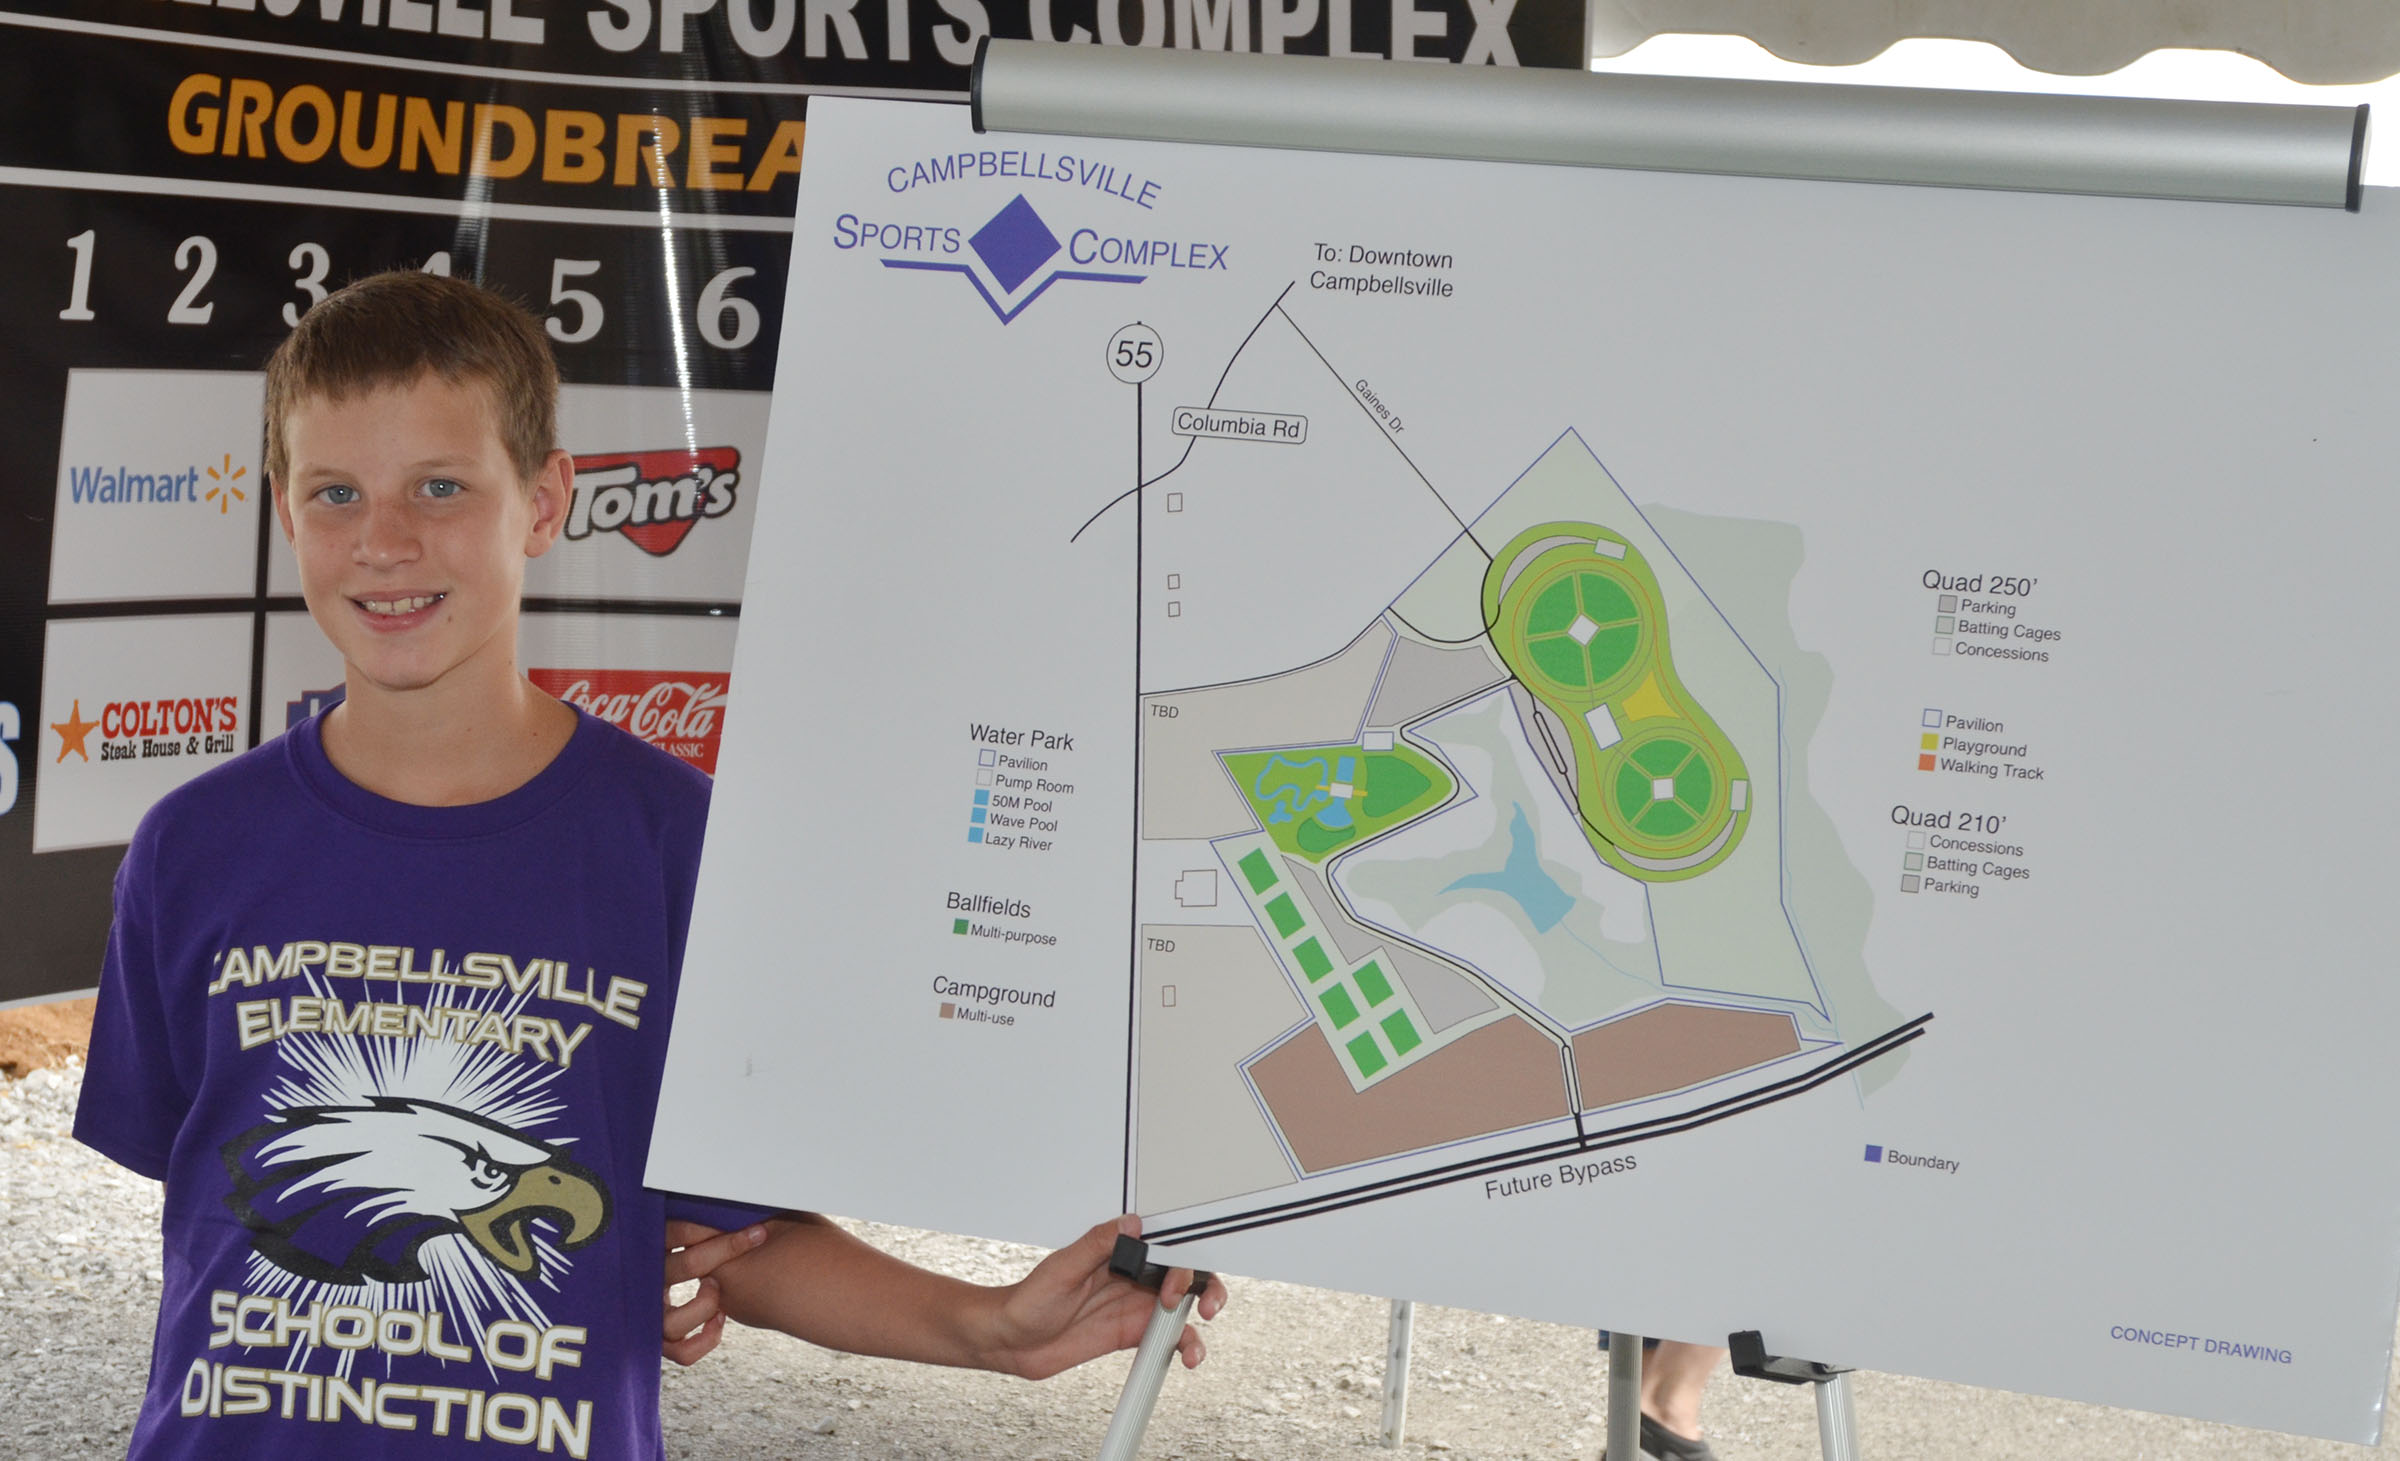 CES fifth-grader Rowan Petett holds a drawing of the Campbellsville Sports Complex.